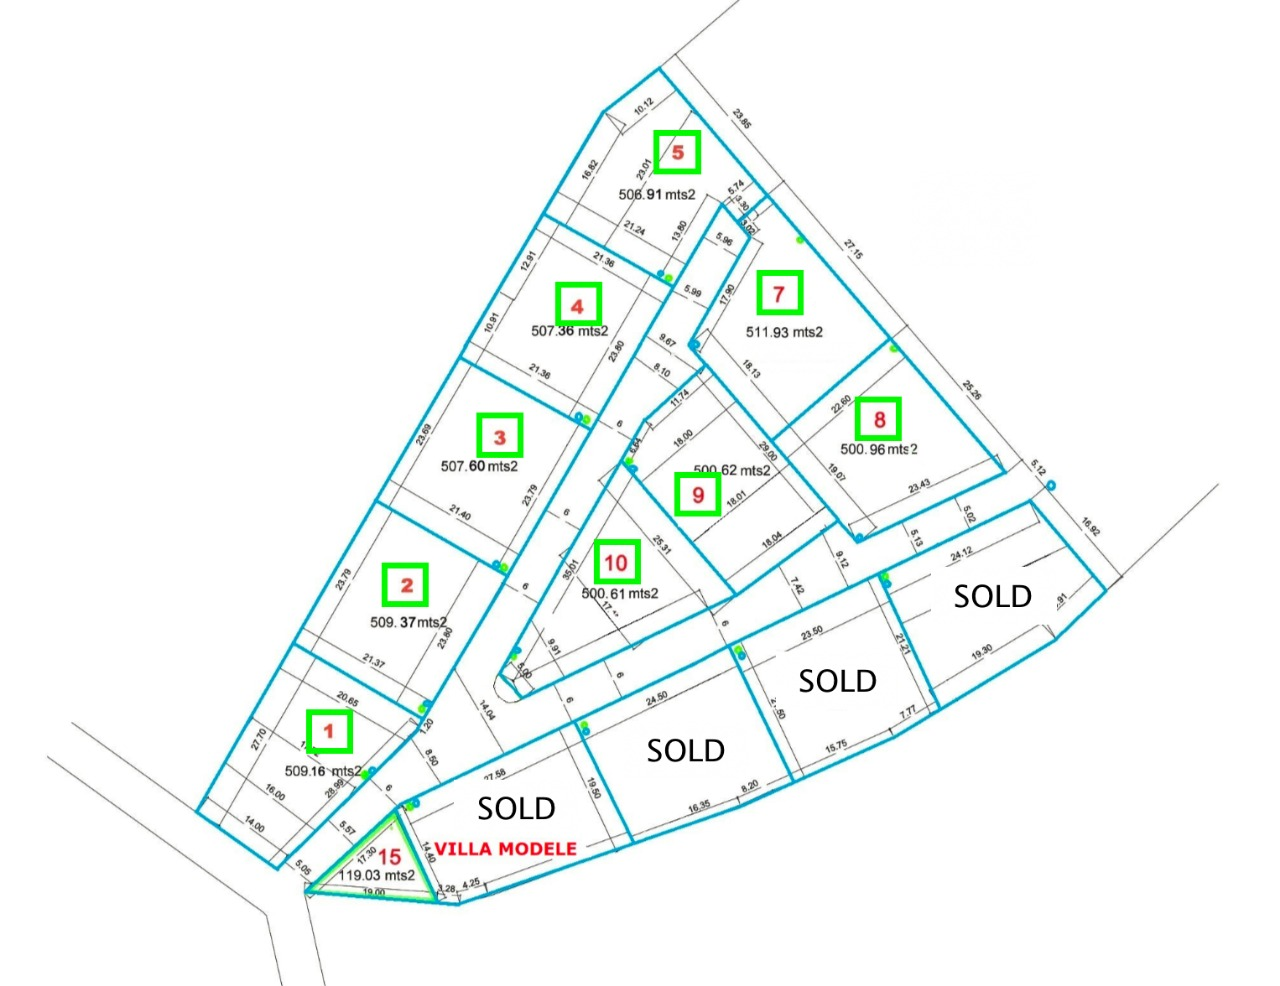 Last lots available for sale marked with green squares